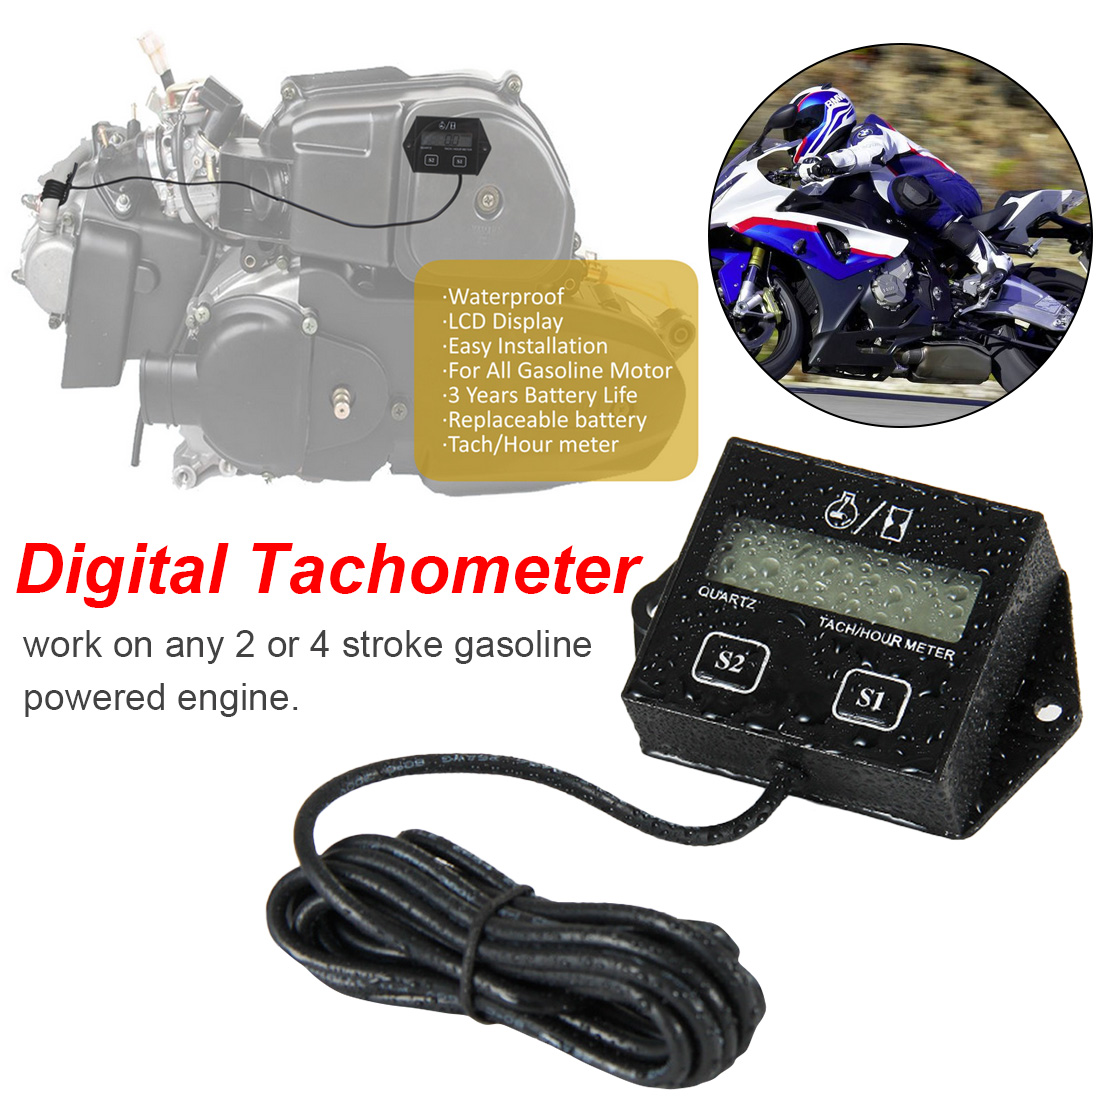 Waterproof Tachometer Gauge Digital Engine Tach Hour Meter LCD Display Motor Boat Engine Electronic Tachometer For Motorcycle